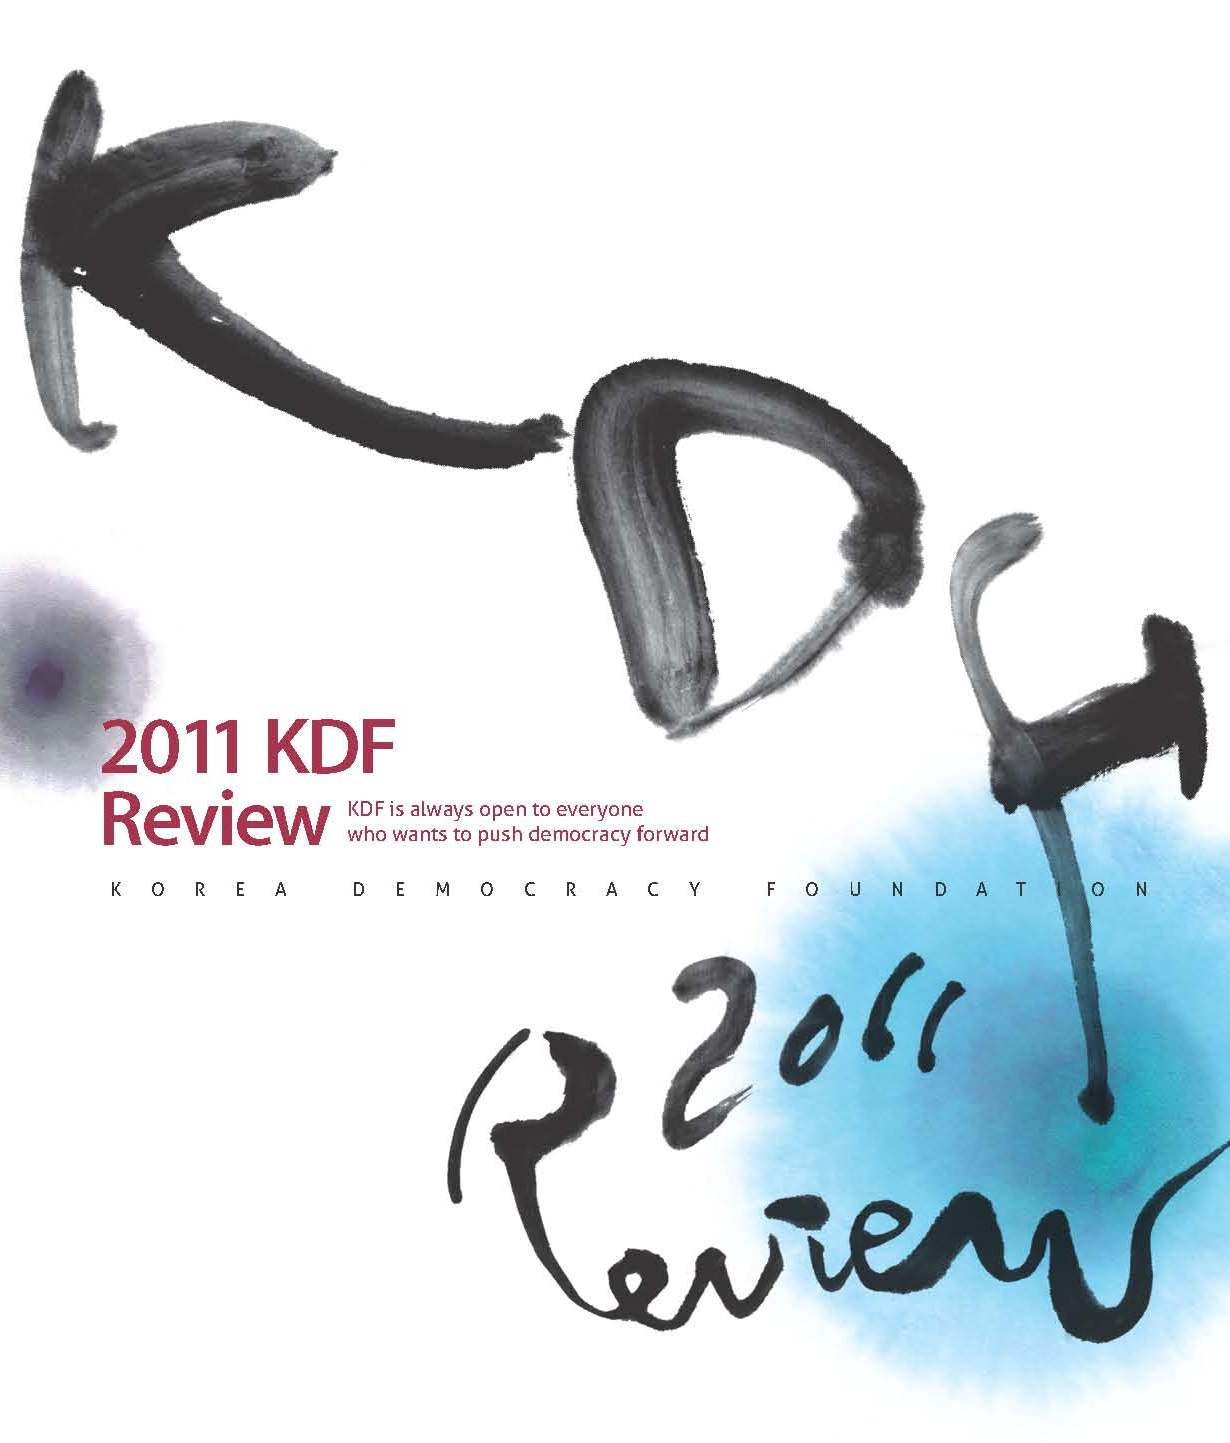 2011 KDF Review